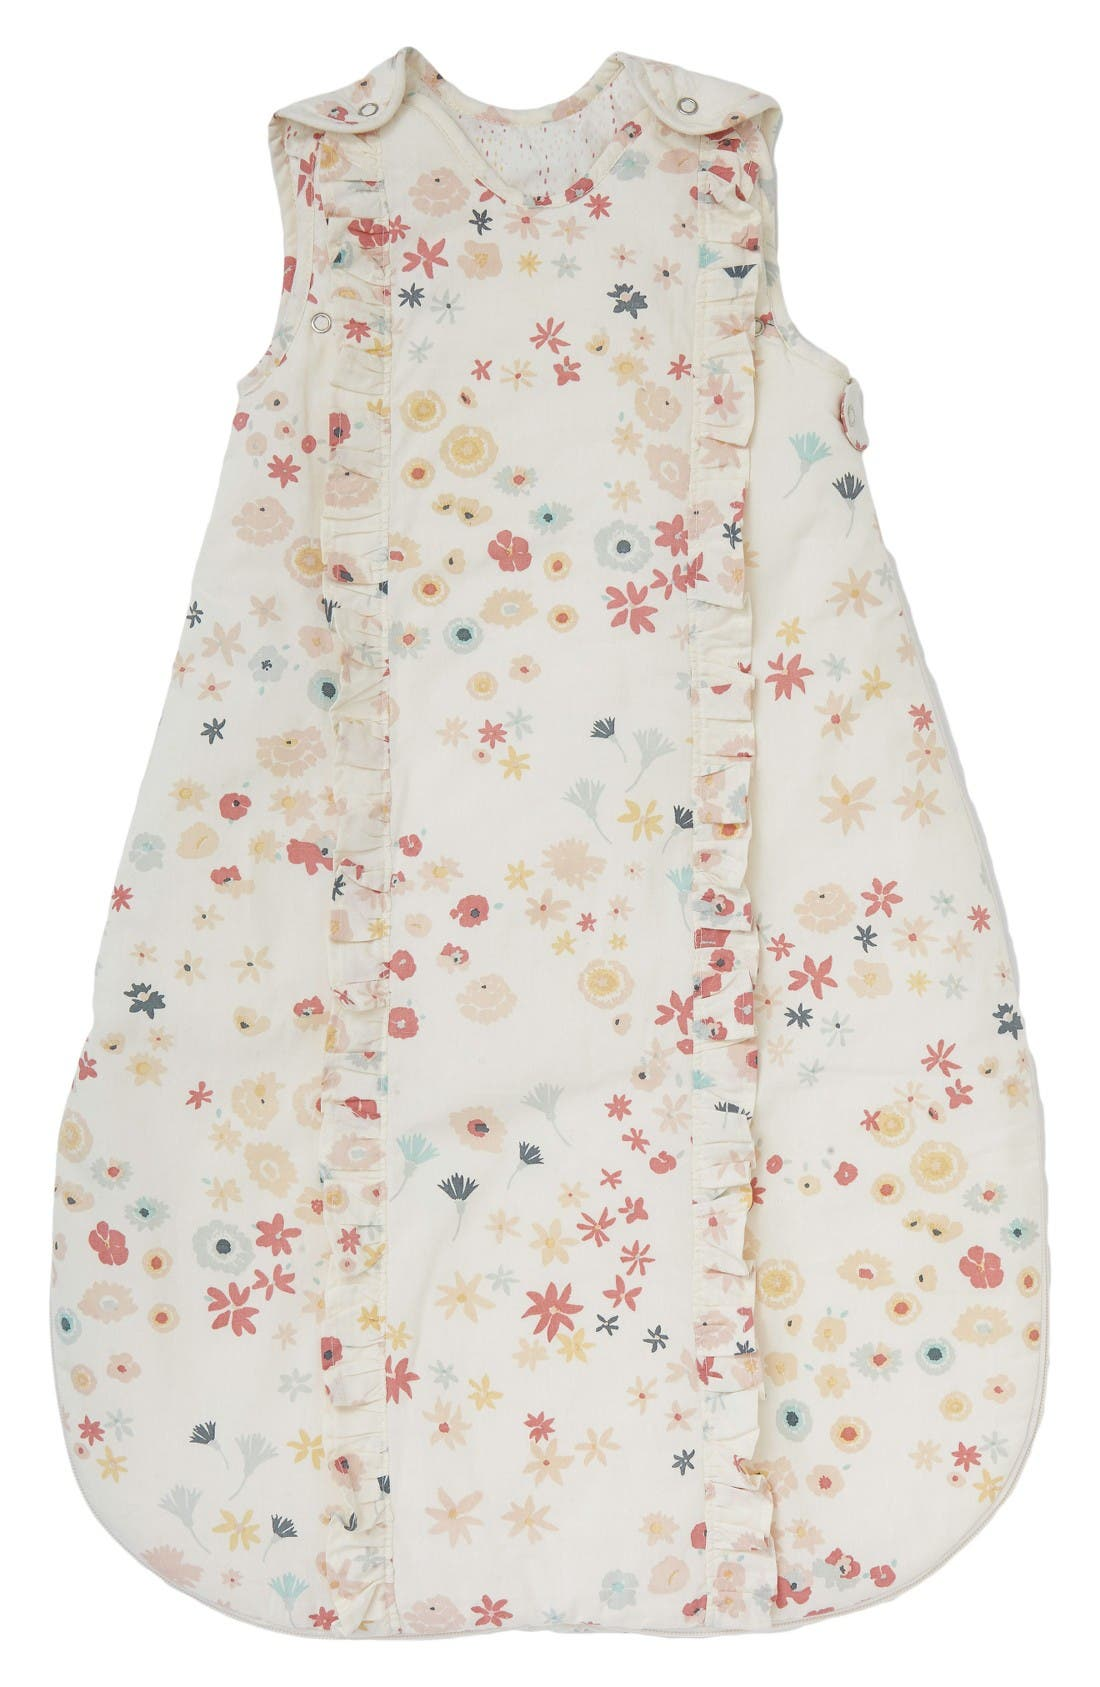 Main Image - Petit Pehr Meadow Print Cotton Wearable Blanket (Baby)